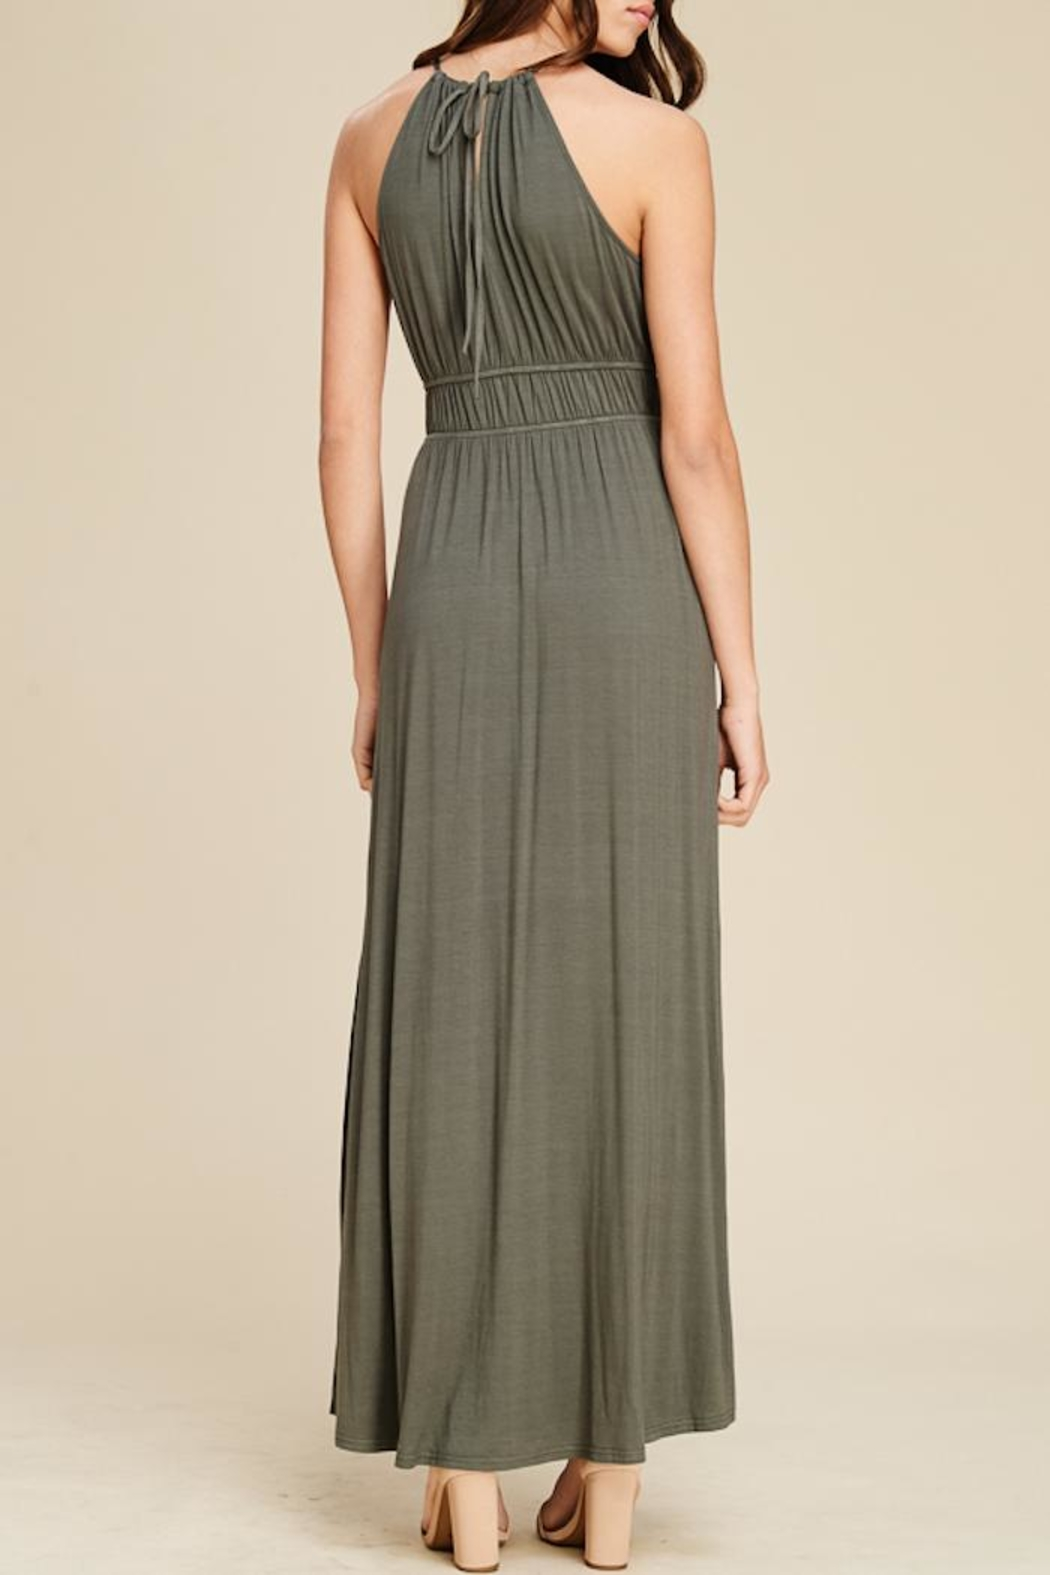 Staccato In The Moment Maxi Dress - Side Cropped Image